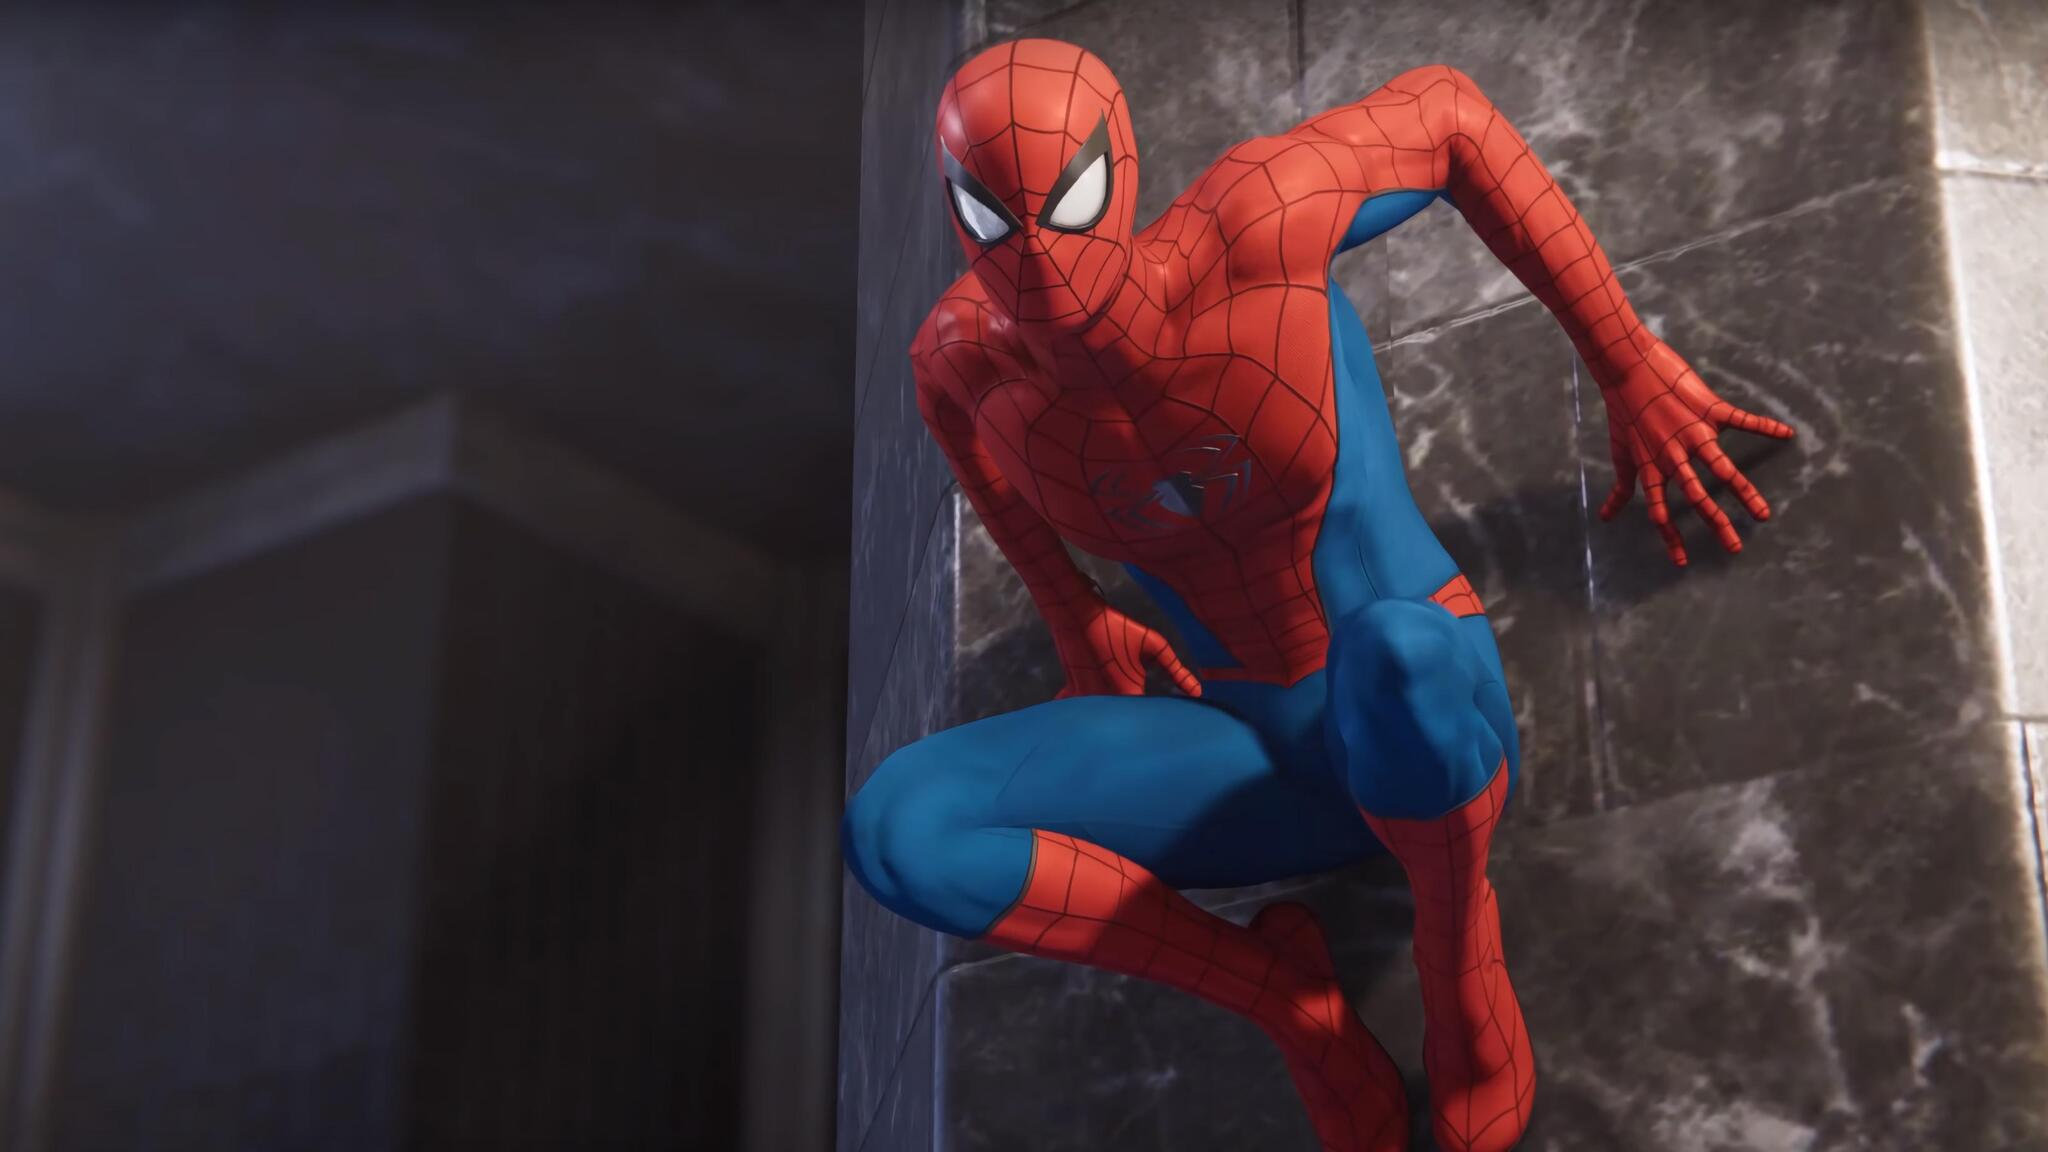 2048x1152 Marvel Spiderman Classic Suit Ps4 2048x1152 Resolution Hd